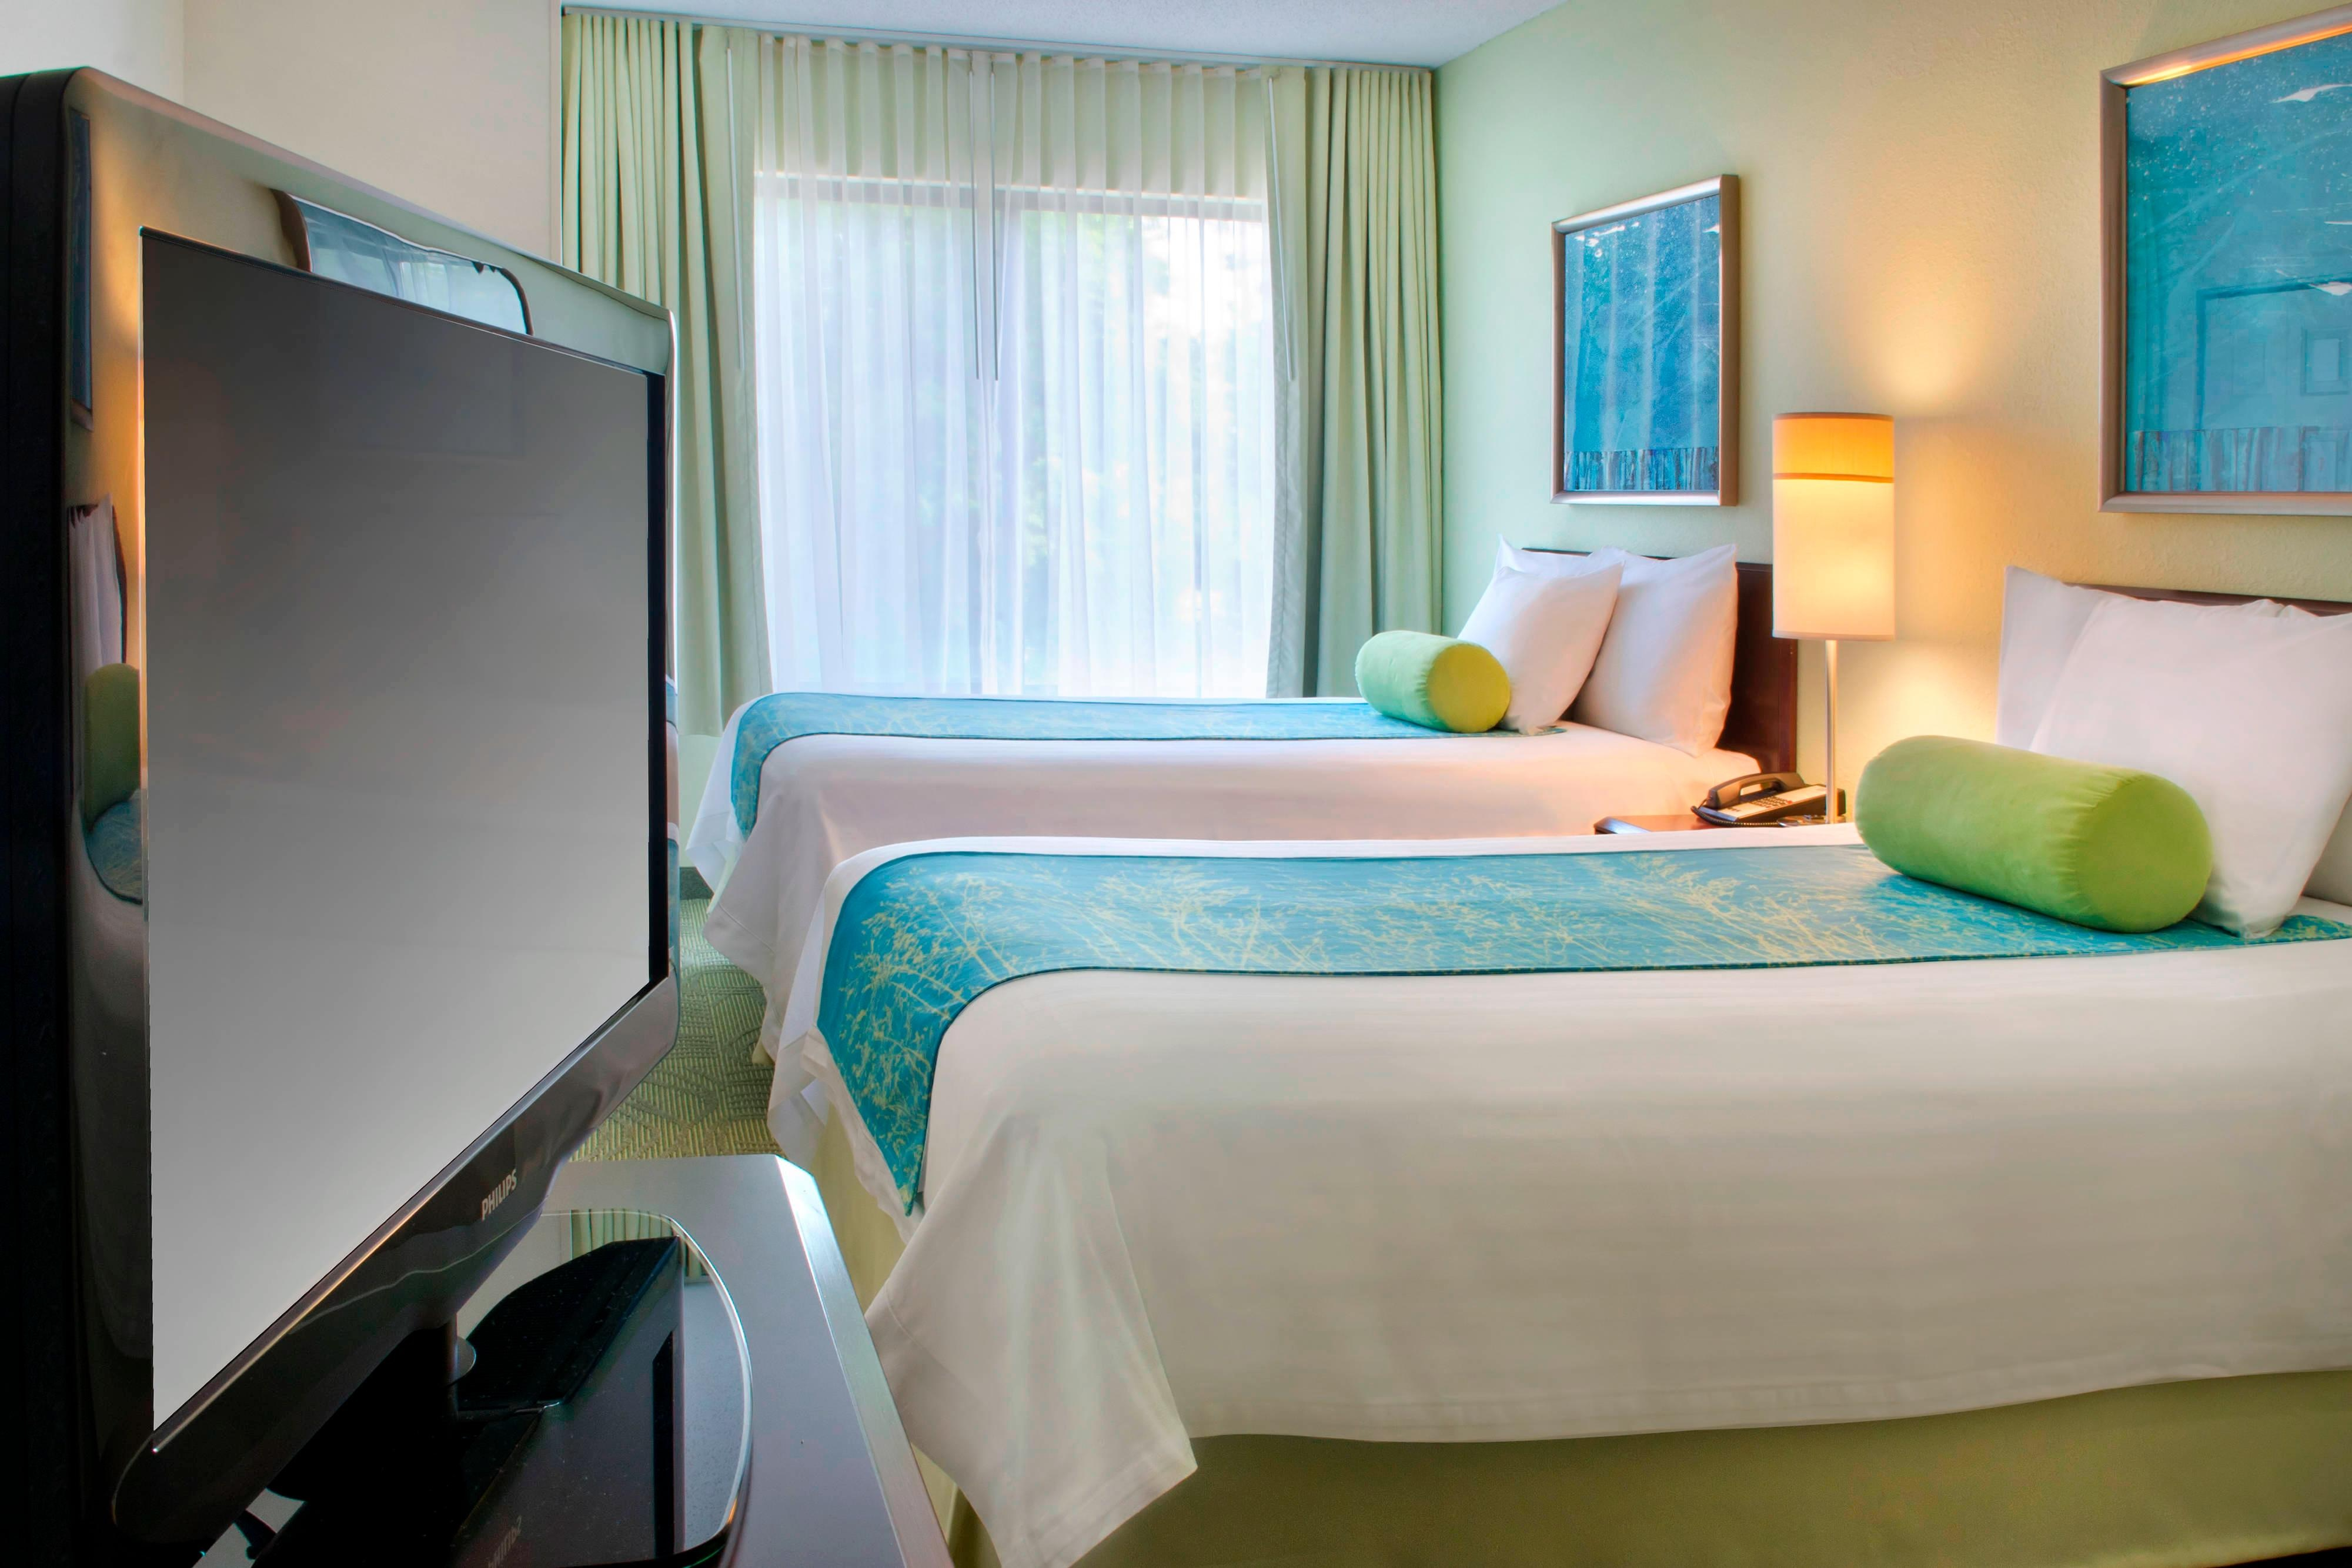 Andover Hotels - Double/Double Suite